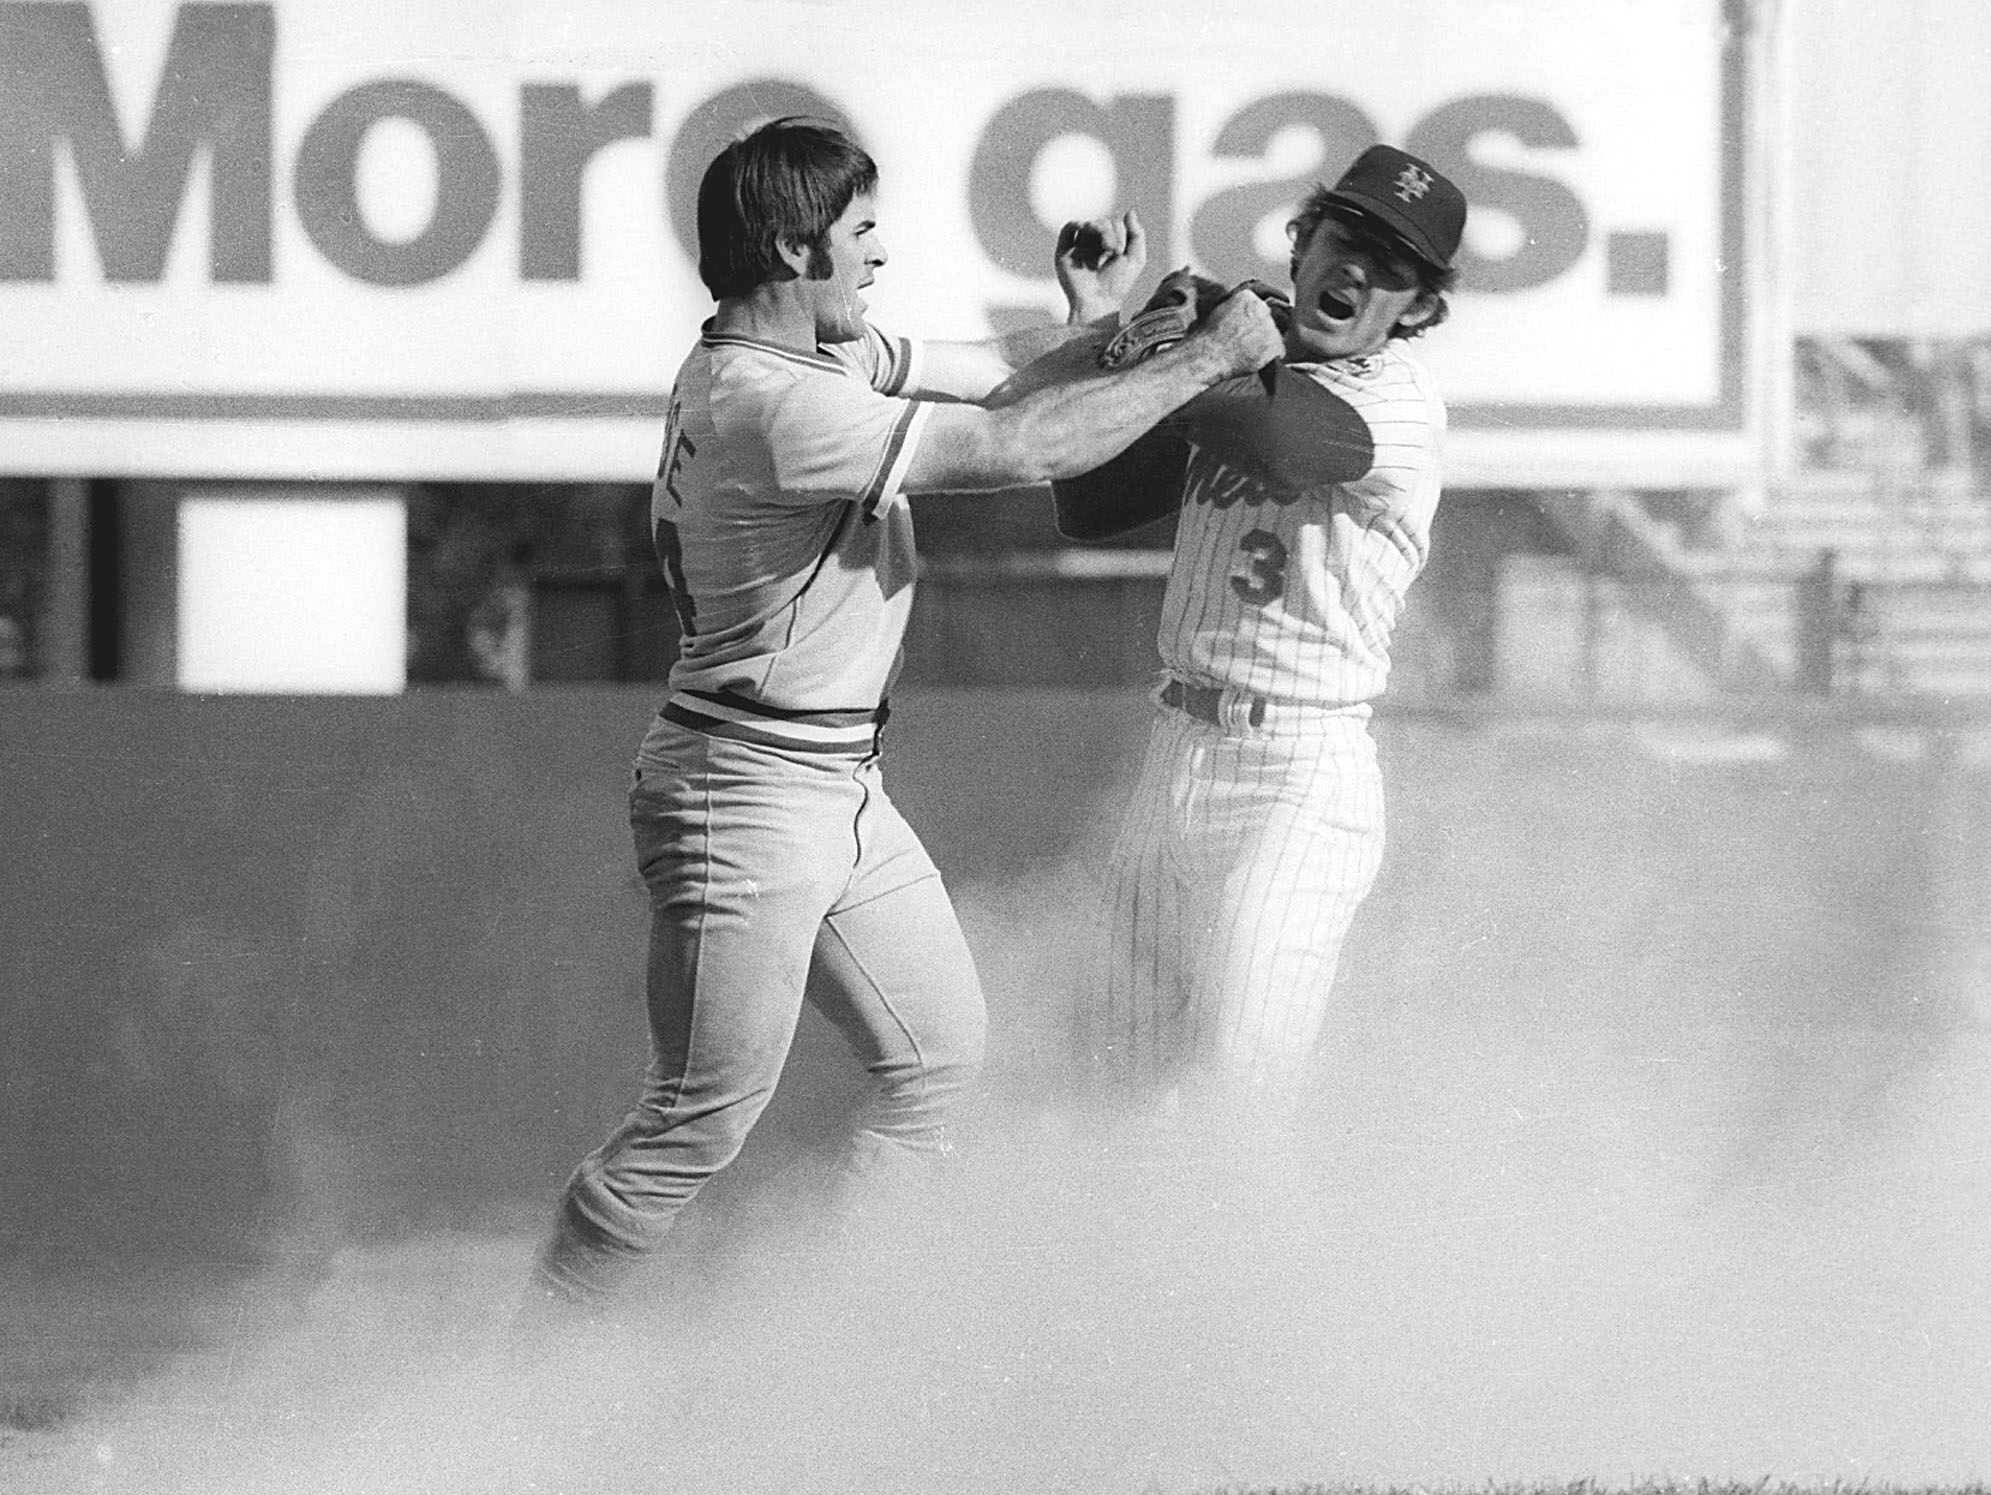 1973 NLCS Game 3: Pete Rose and Mets shortstop fight after Rose tried breaking up a double play.